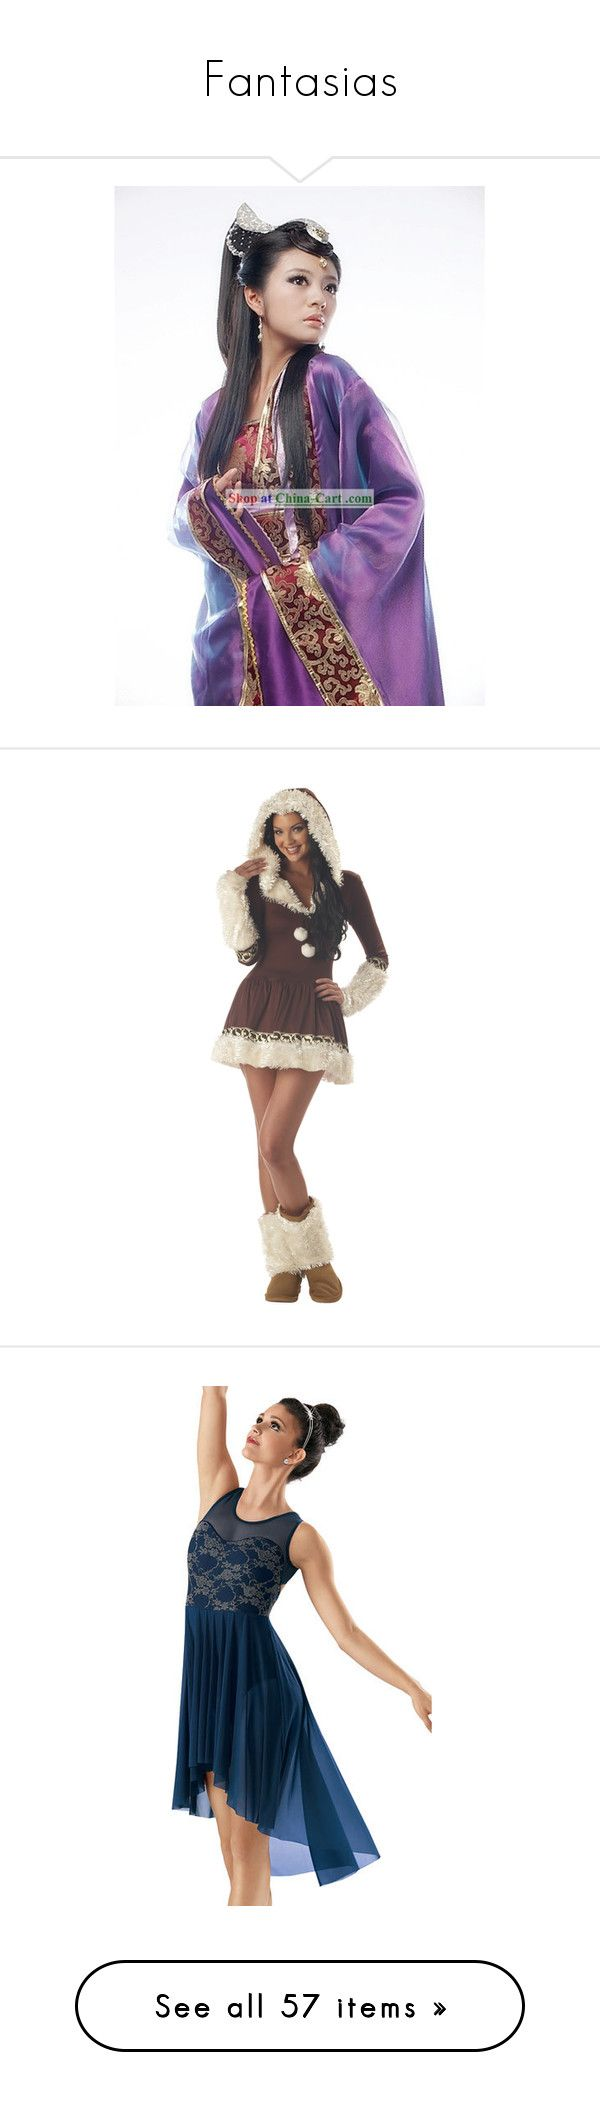 """""""Fantasias"""" by diario-de-uma-viajante ❤ liked on Polyvore featuring costumes, fairy halloween costume, fairy costume, halloween costumes, sexy plus size womens costumes, animal print costumes, sexy costumes, eskimo halloween costume, sexy plus size costumes and dance"""